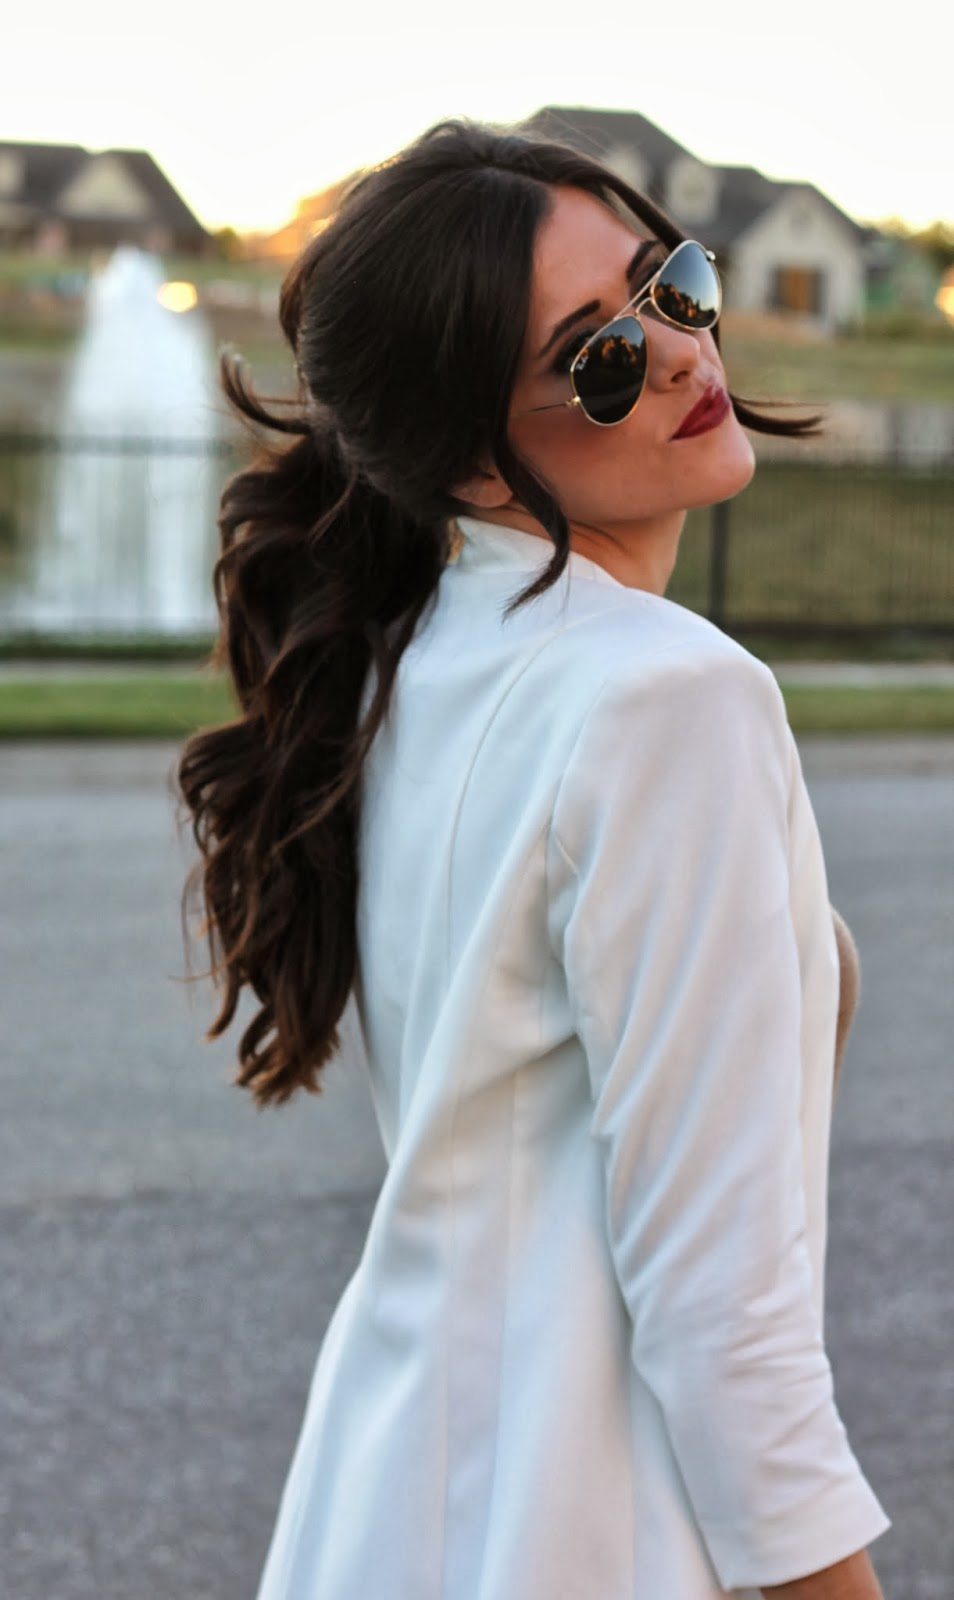 ponytail, brunette ponytail, curly ponytail, the sweetest thing hair, ponytail pinterest, fall 2013 ponytail, white blazer, emily ann gemma, gold raybans, hair idea, taupe phillip lim pashli, 3.1 phillip lim, phillip lim pashli